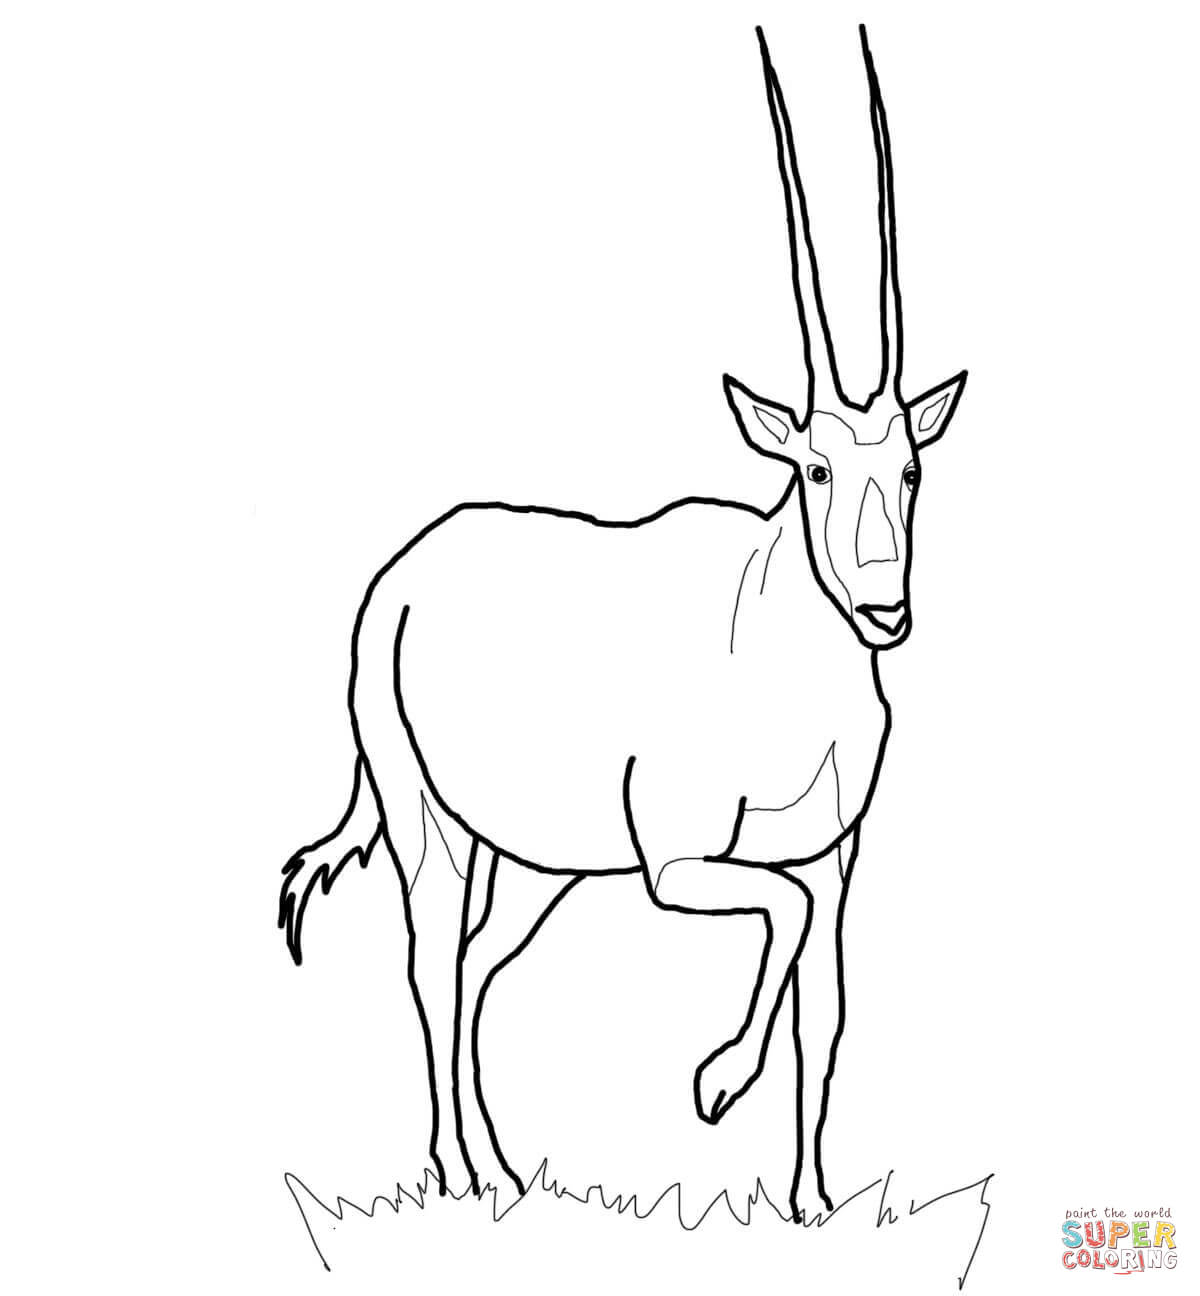 Oryx coloring #12, Download drawings